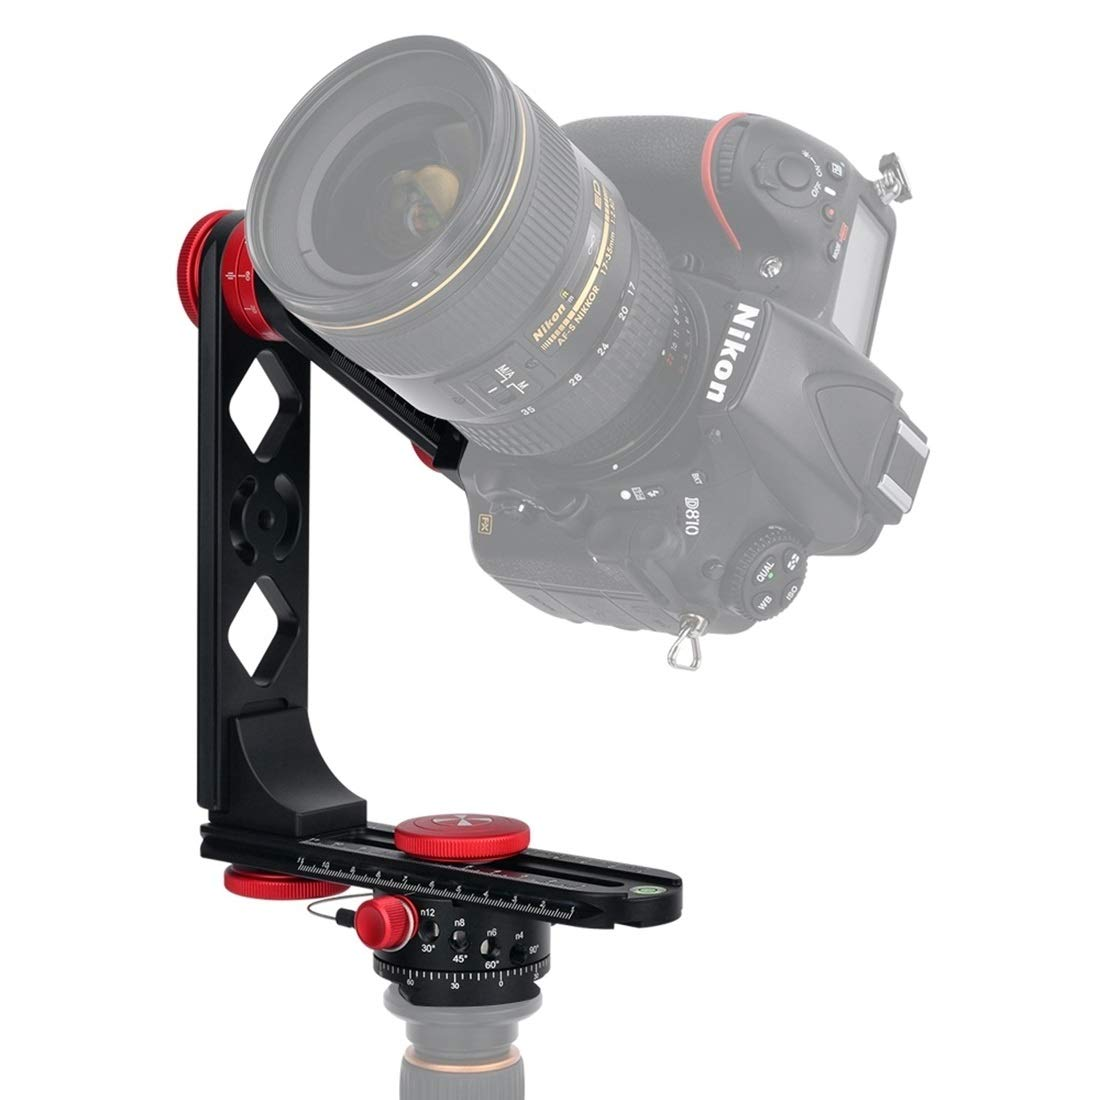 HEGUANGWEI Camera Mount 720 Degree Panoramic Aluminum Alloy Ball Head Quick Release Plate Kits Photography by HEGUANGWEI